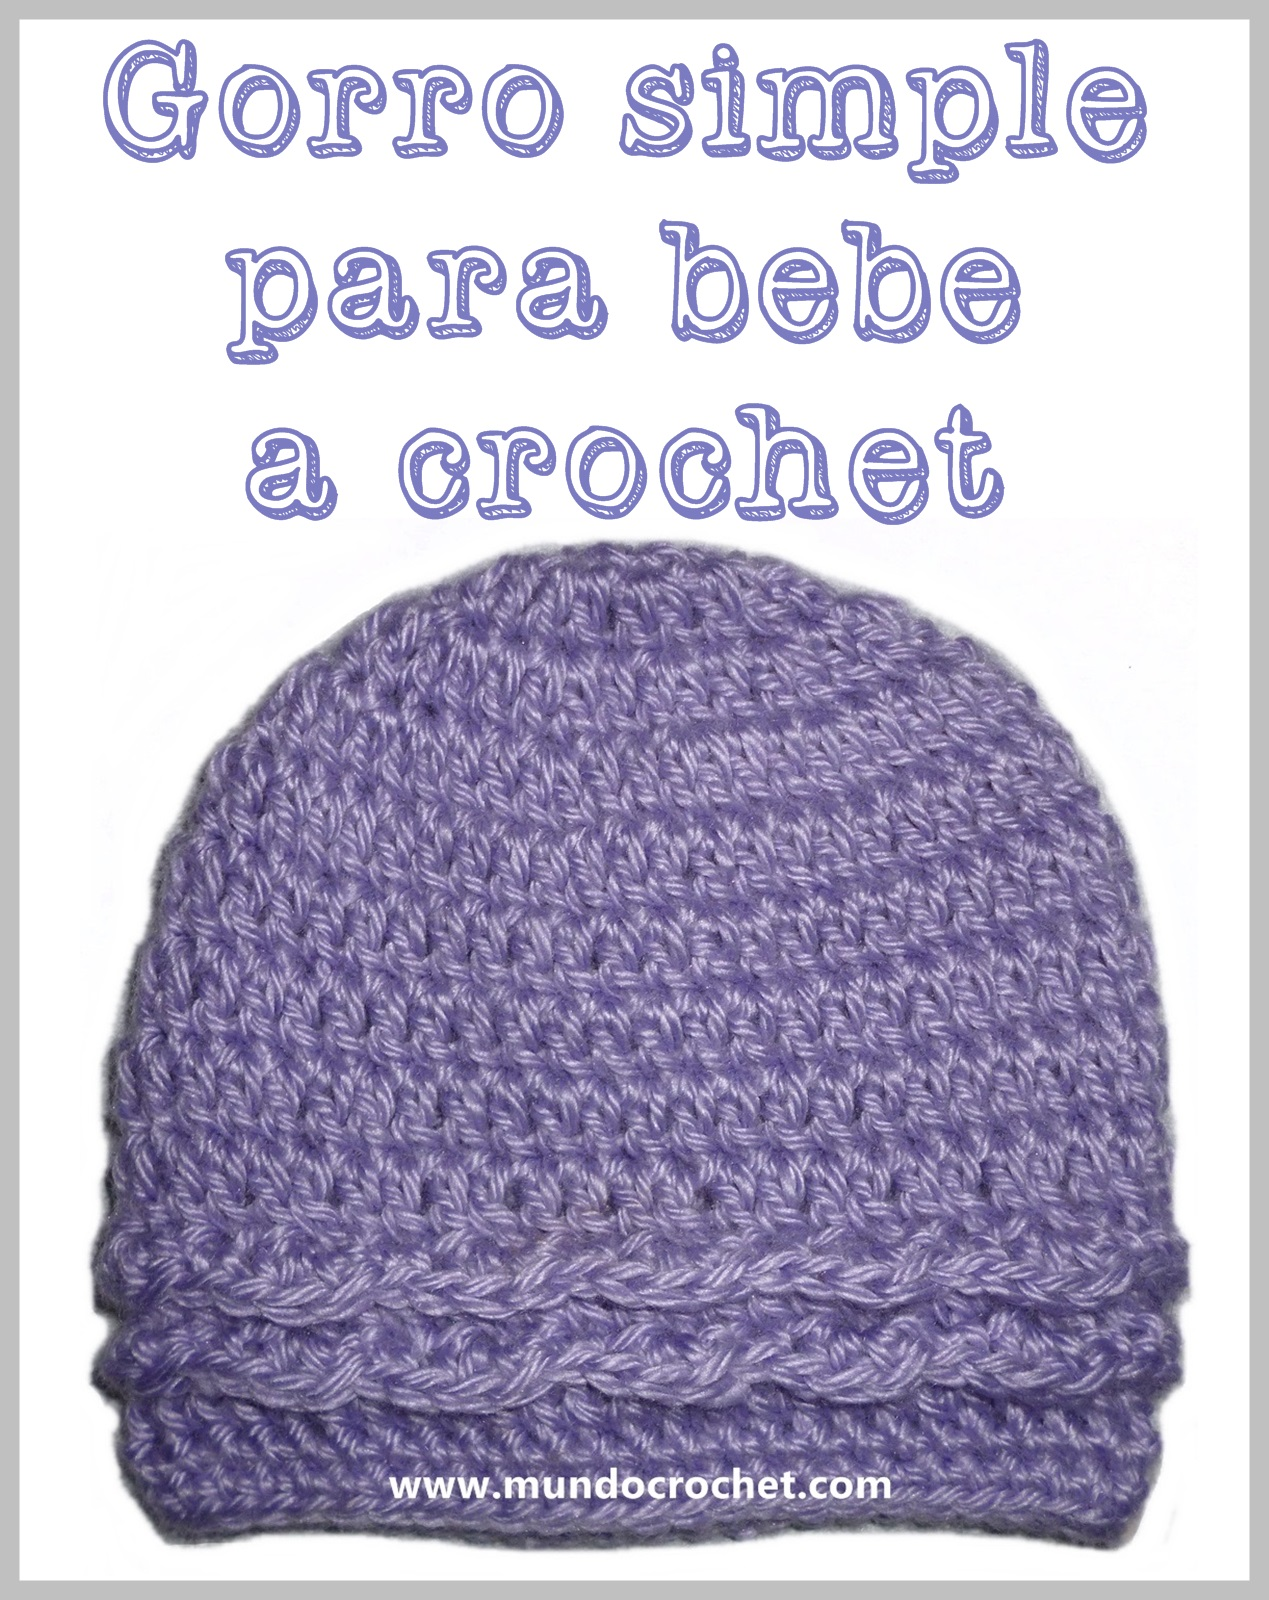 741a439a4 Patron-gorro-simple-para-bebe-a-crochet-o-ganchillo00.jpg